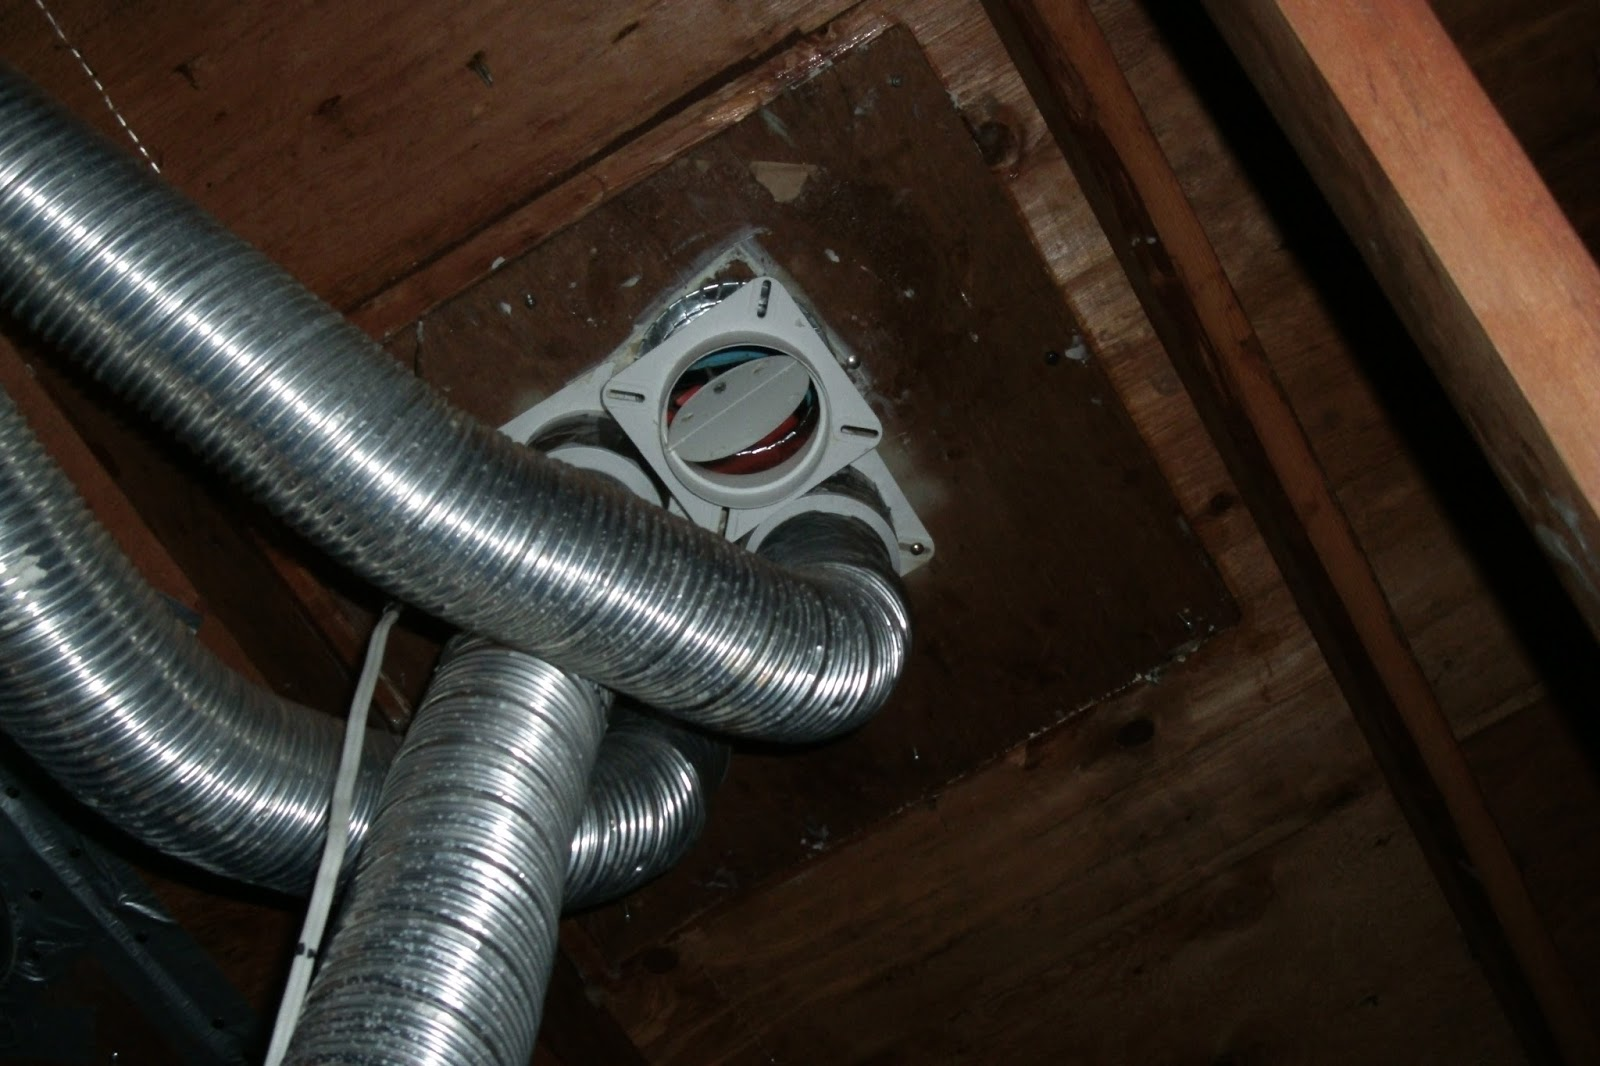 George 39 s blog for friends mysteries of the attic revealed ii for 3 bathroom exhaust vent